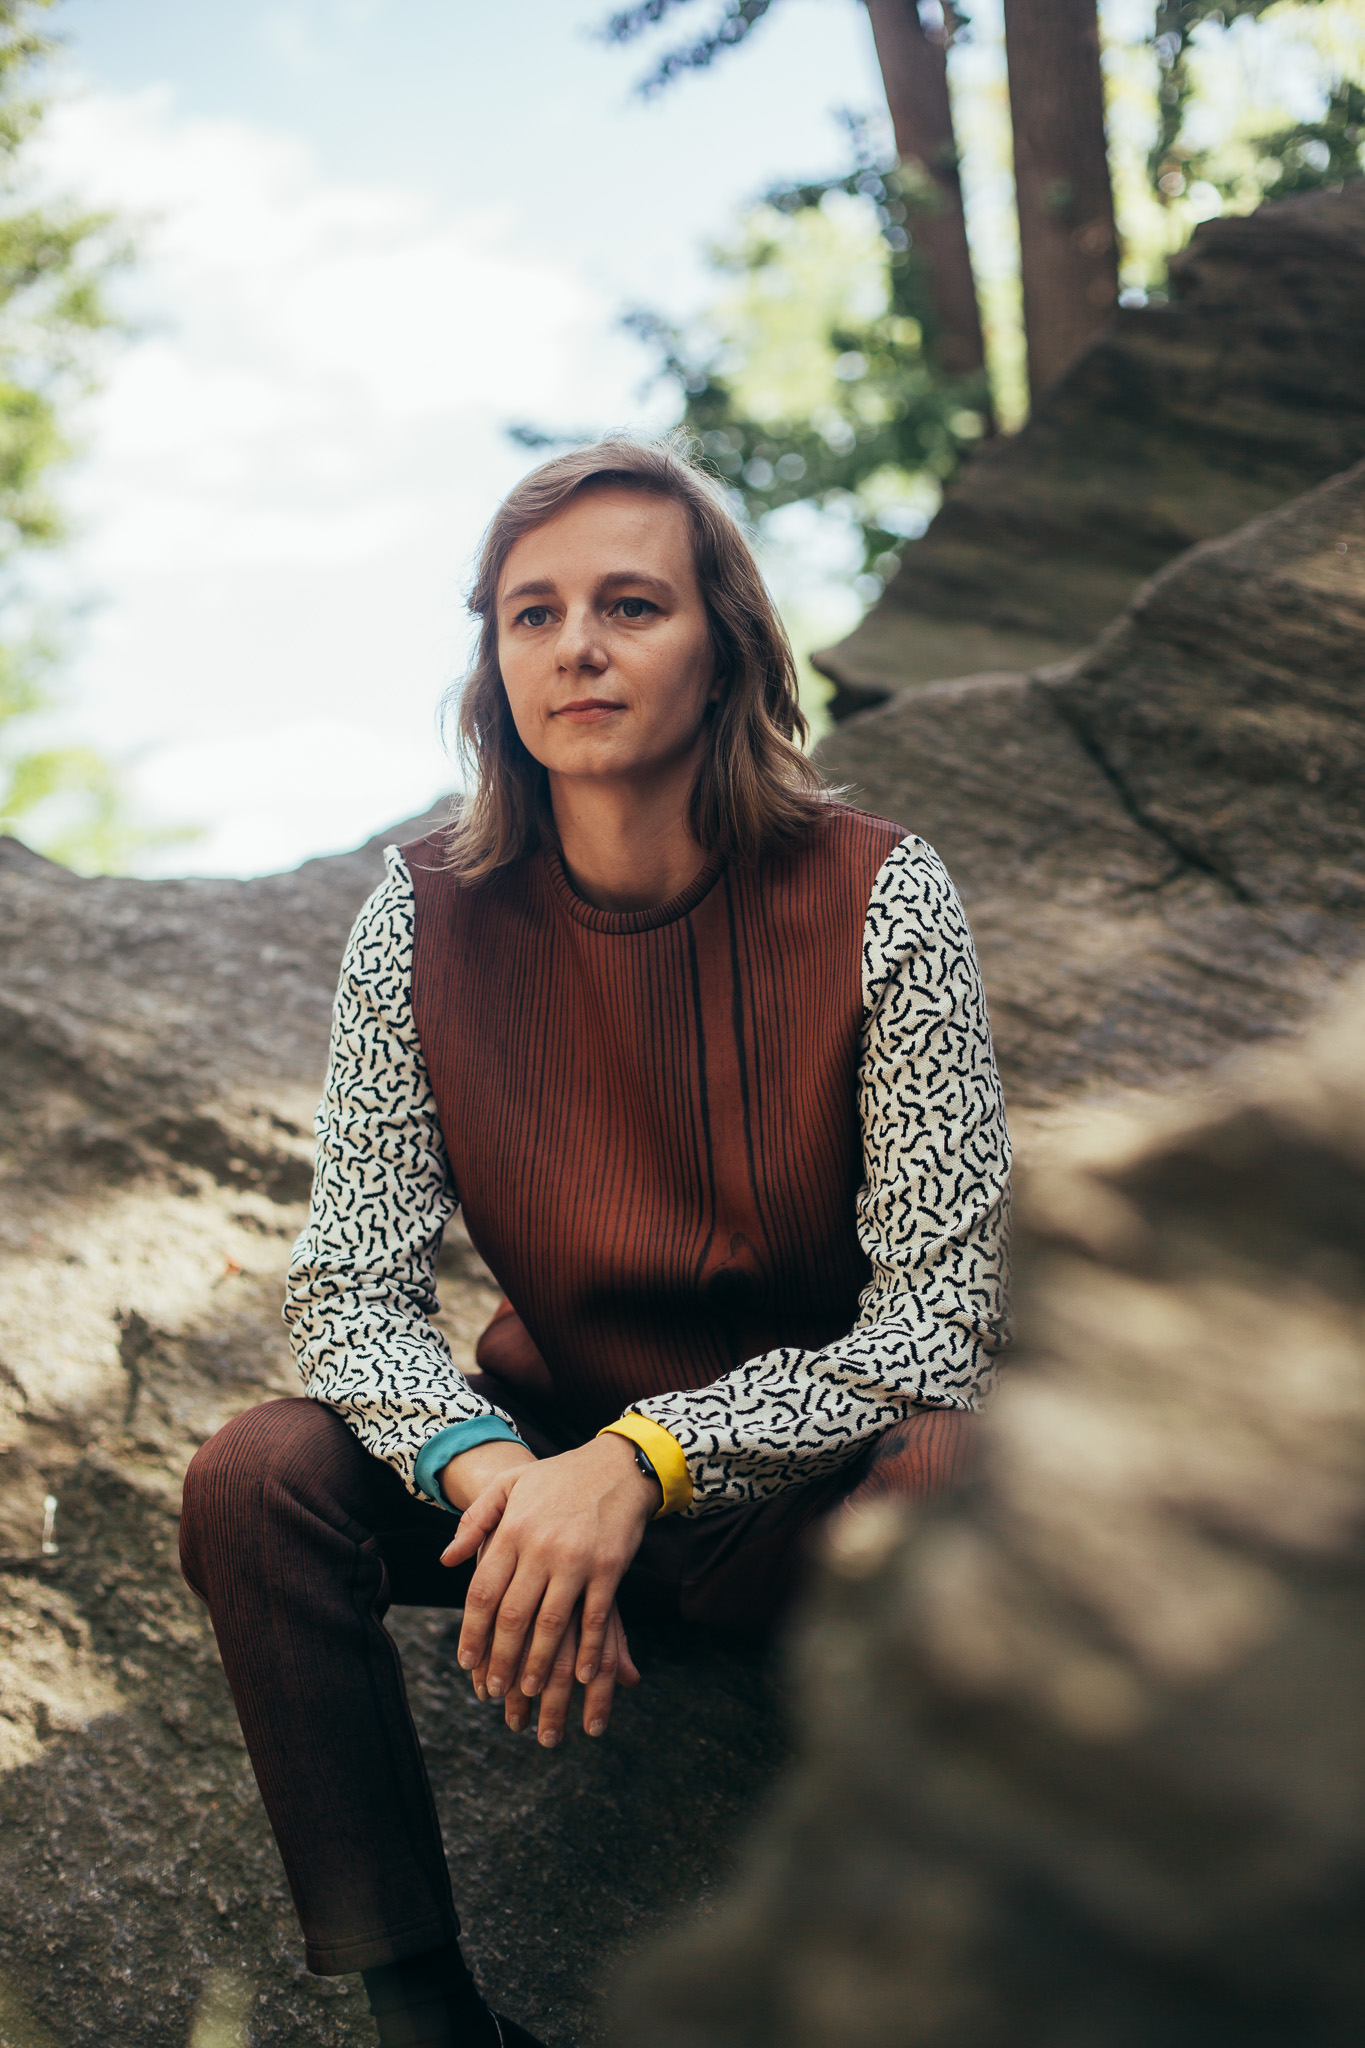 Portrait of Shannon sitting outside on a sunny day among large, flat rocks, smiling softly and looking off in another direction. She is wearing a wood grain sweatshirt and pant set. The sweatshirt has contrasting sleeves with a squiggle pattern and sleeve cuffs in two different colors.